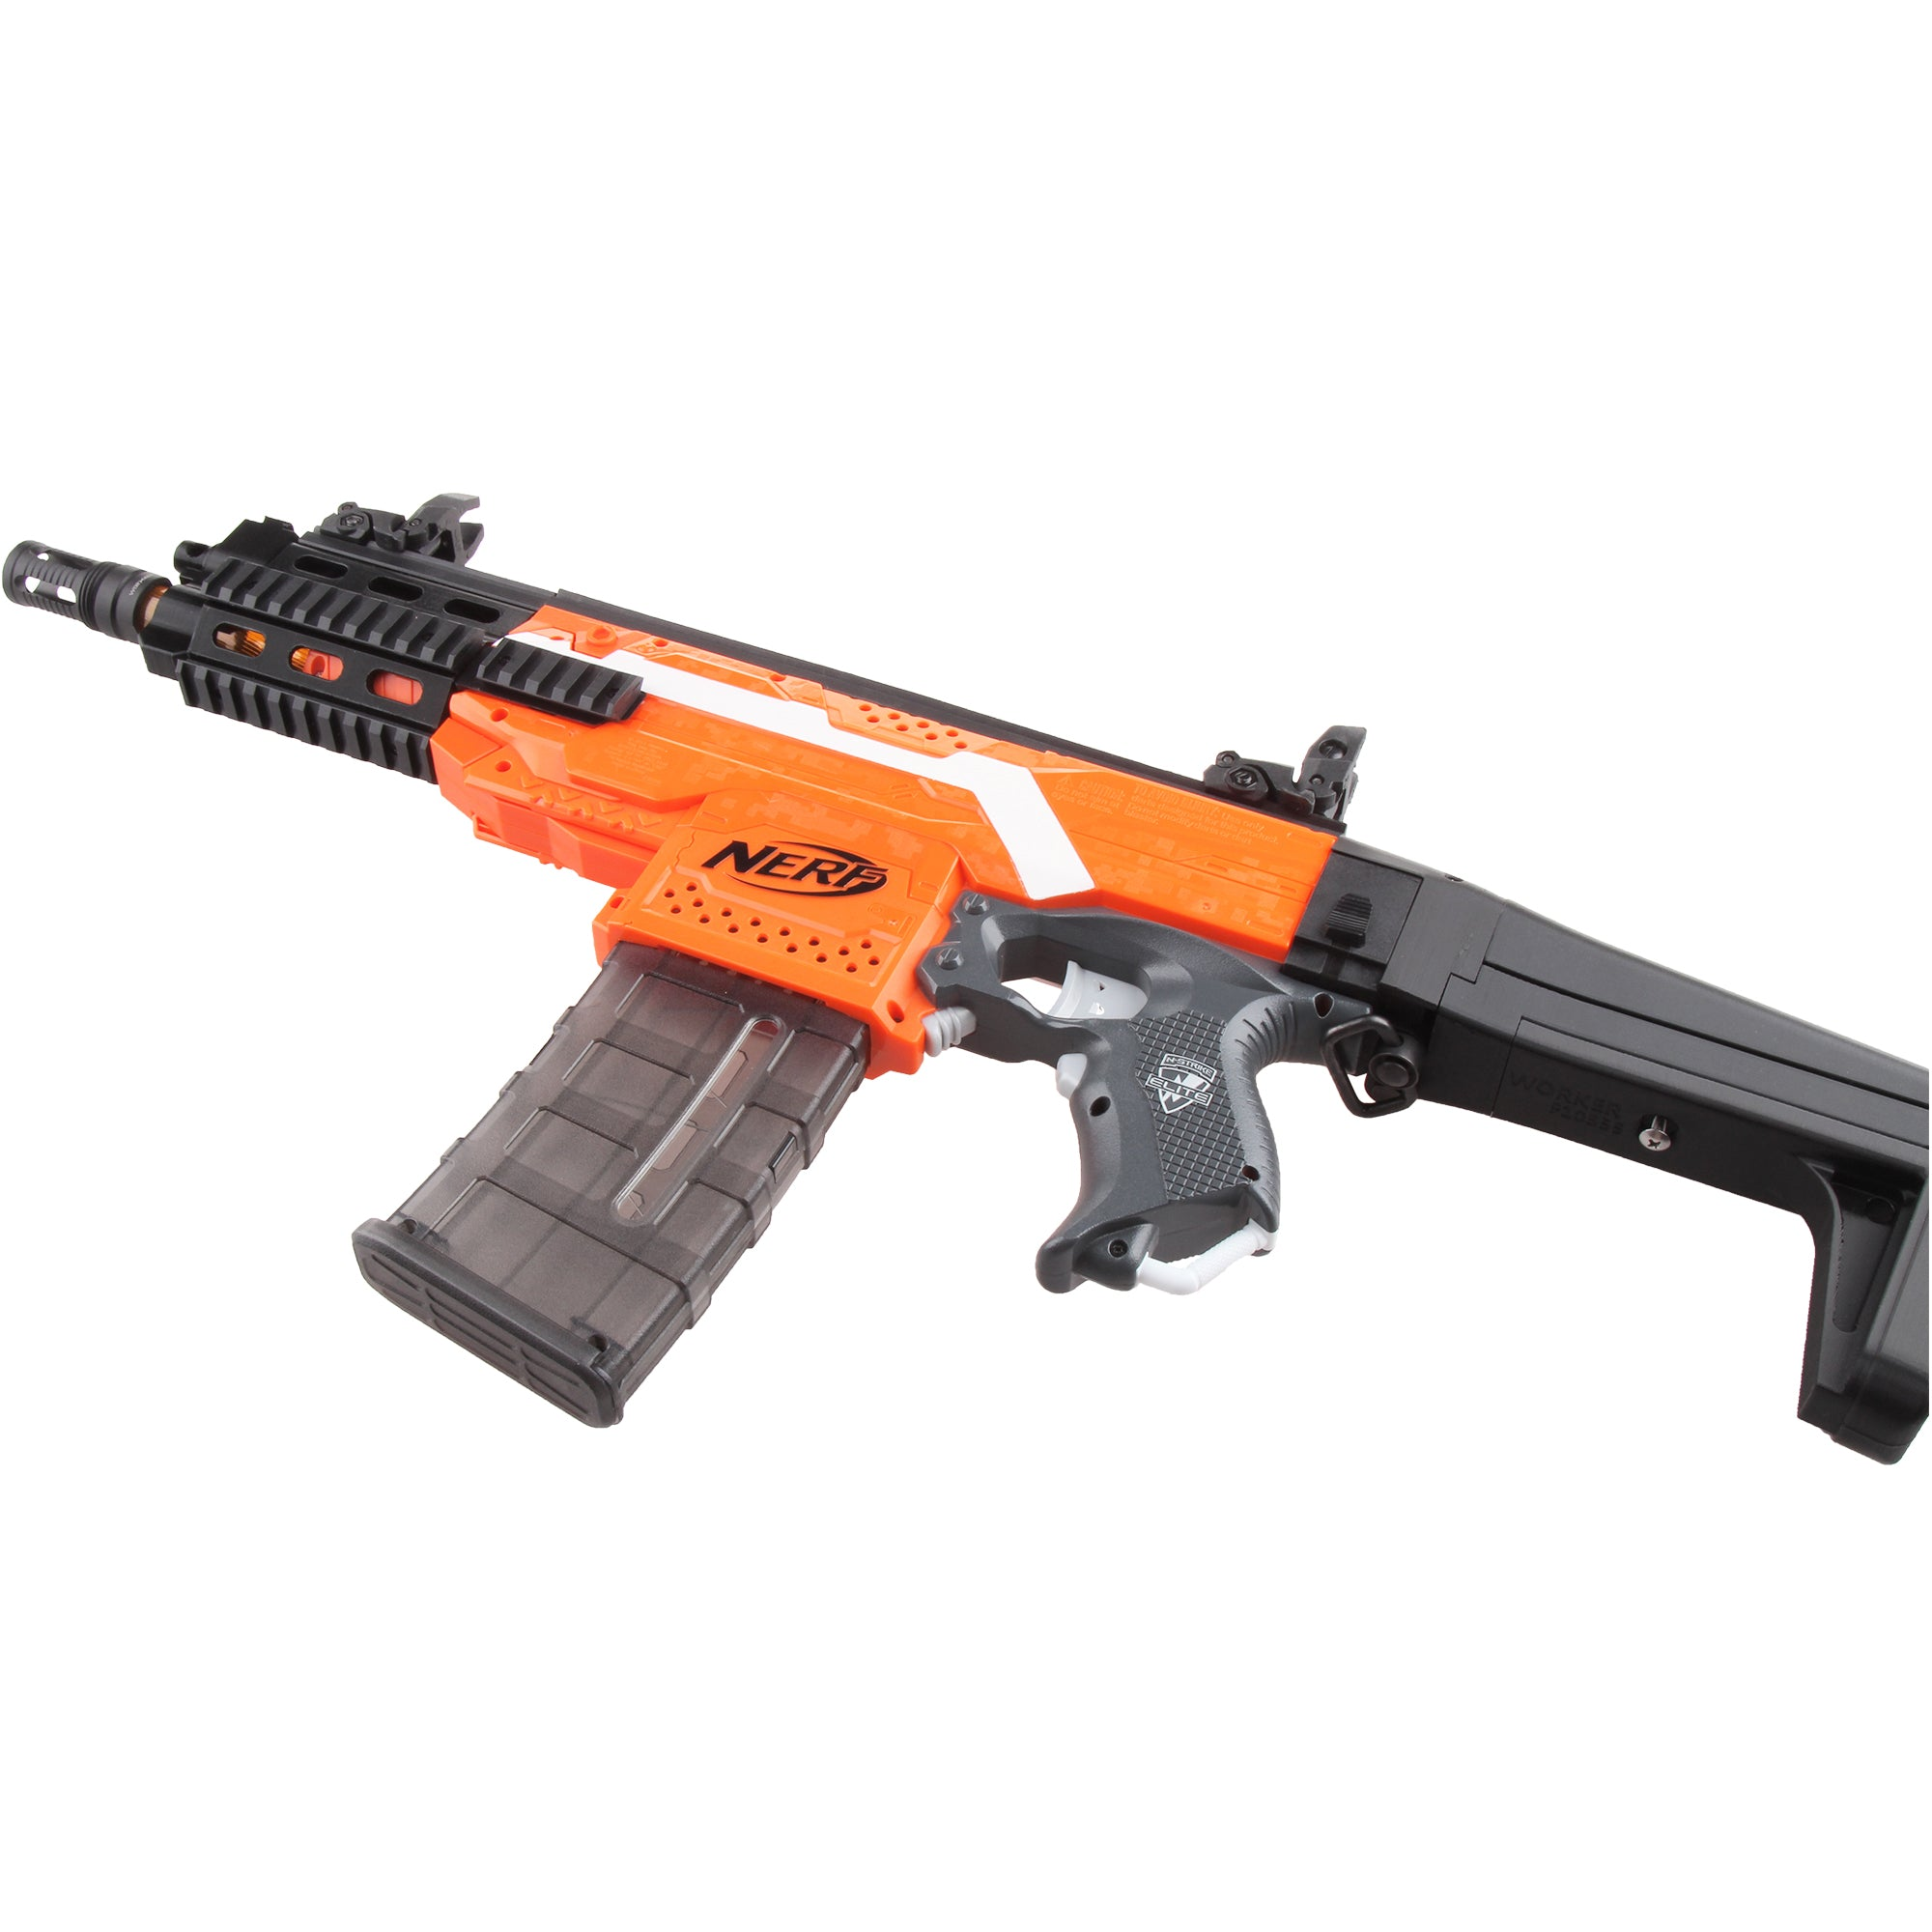 JGCWorker STF-W012-A XCR-L Micro Mod Kits Set for Nerf N-Strike Elite Stryfe Blaster - Nerf Mod Kits -Worker Mod Kits